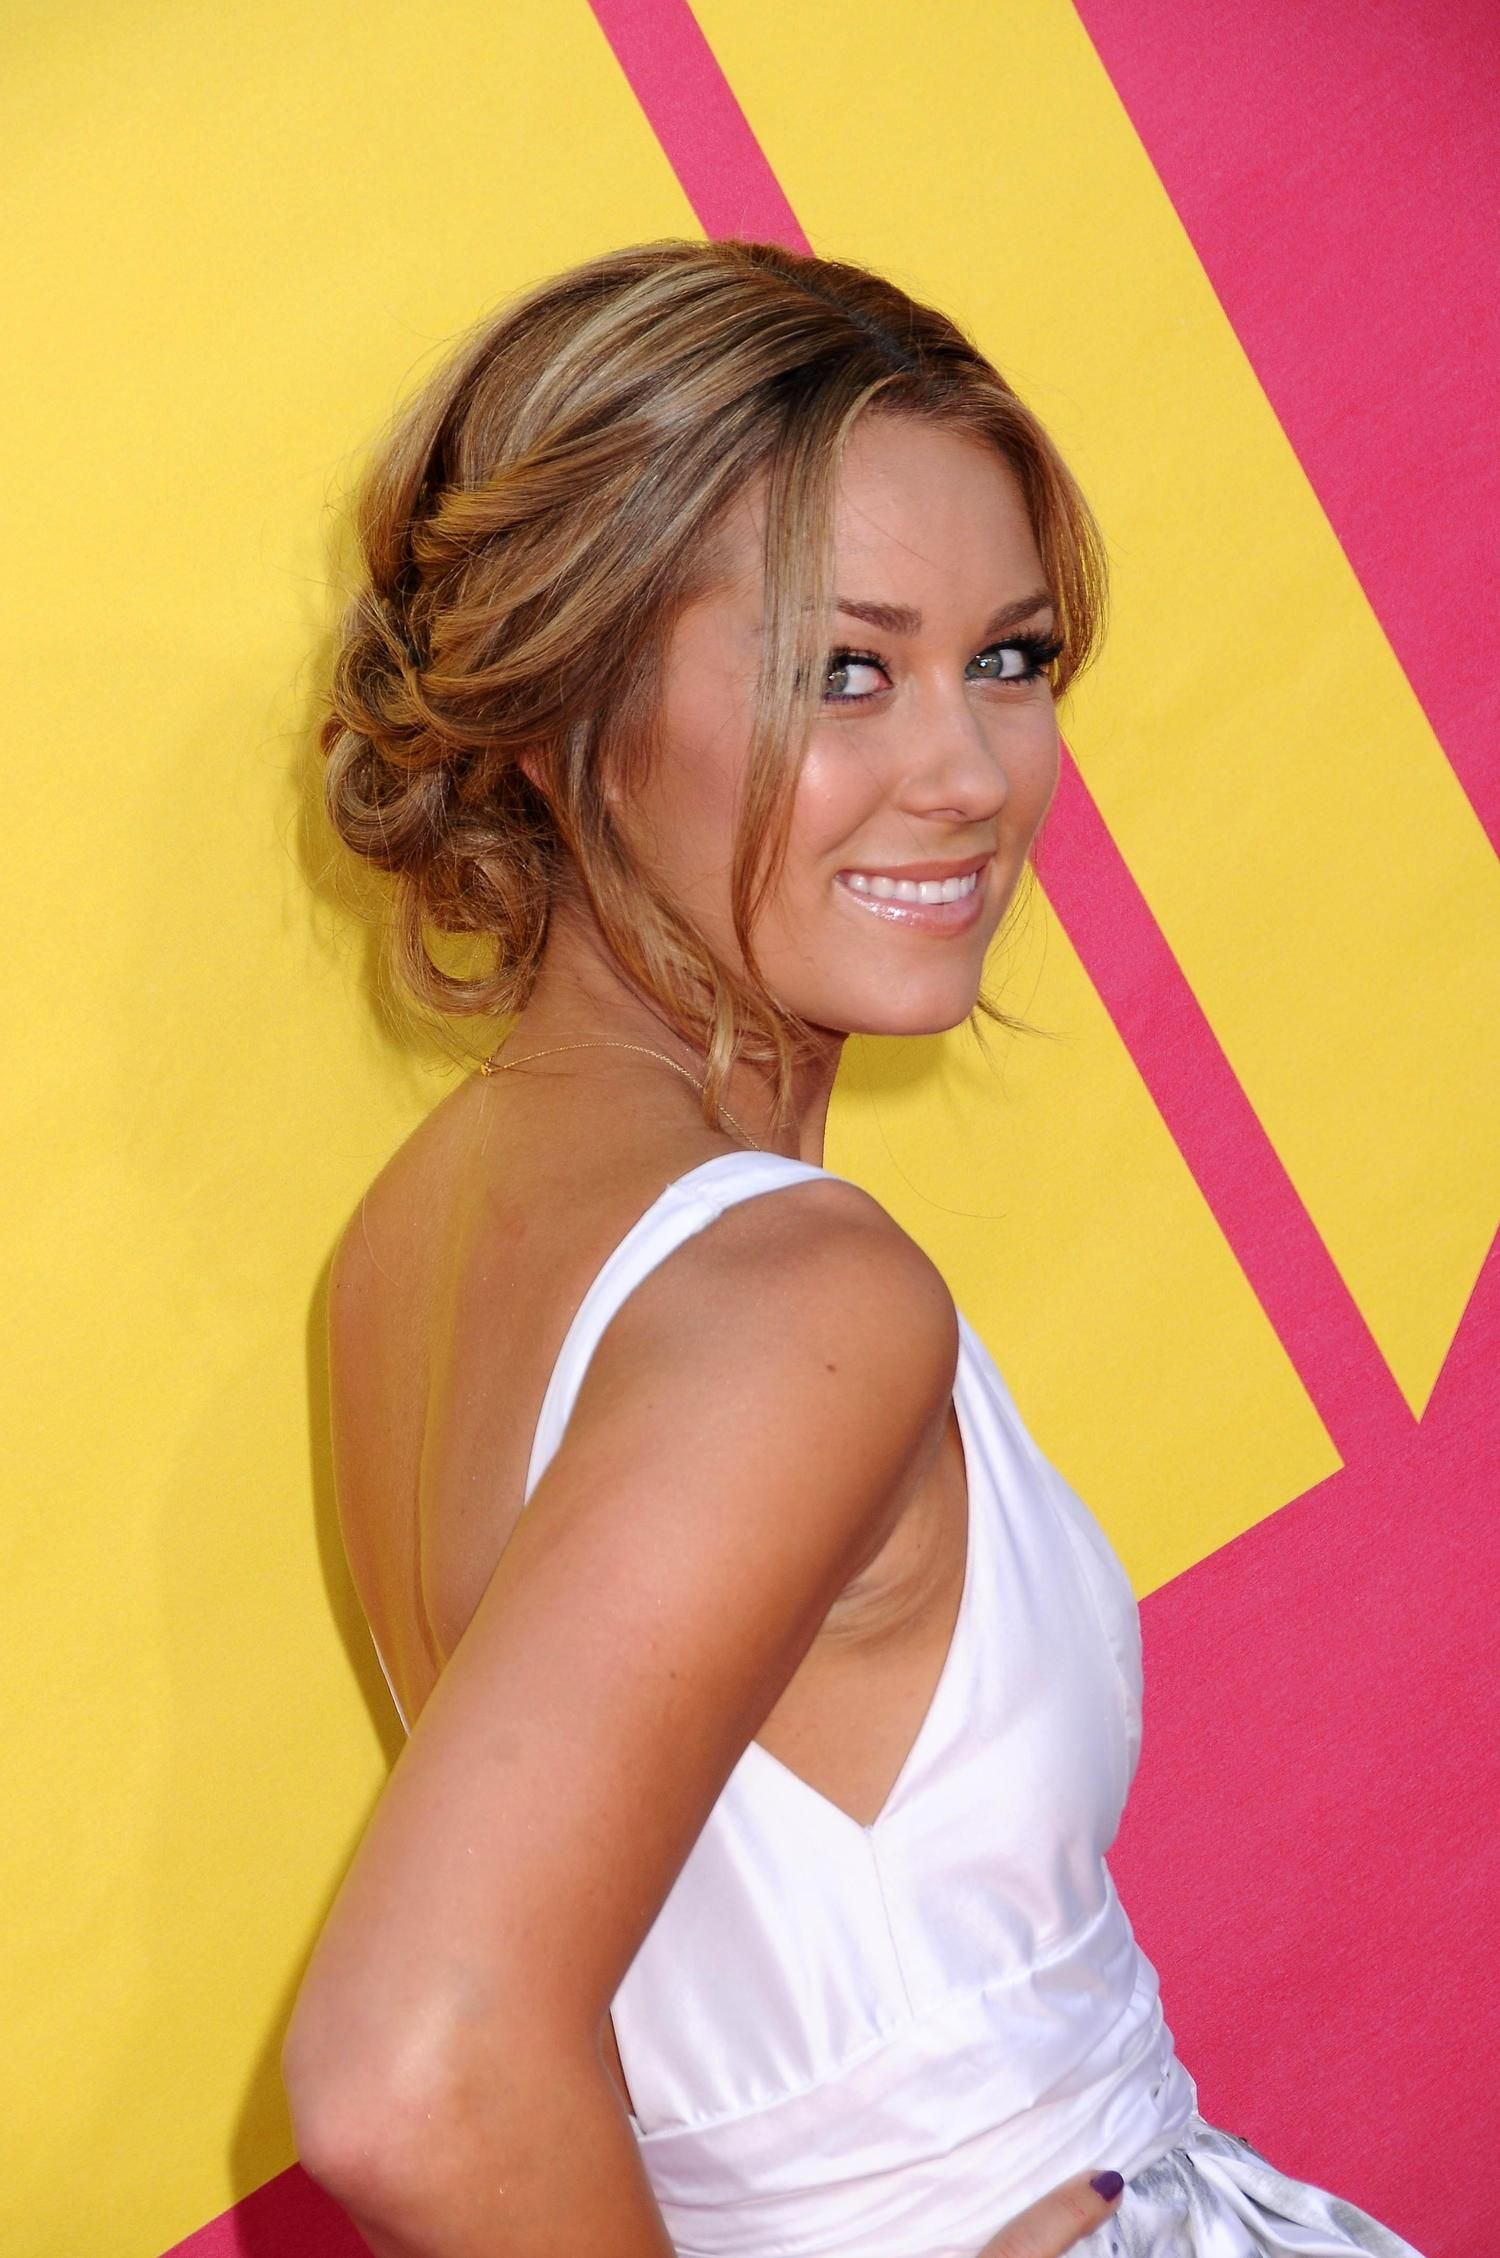 d0e211044b4 Laguna Beach star Lauren Conrad may have moved on up to the Hollywood  hills